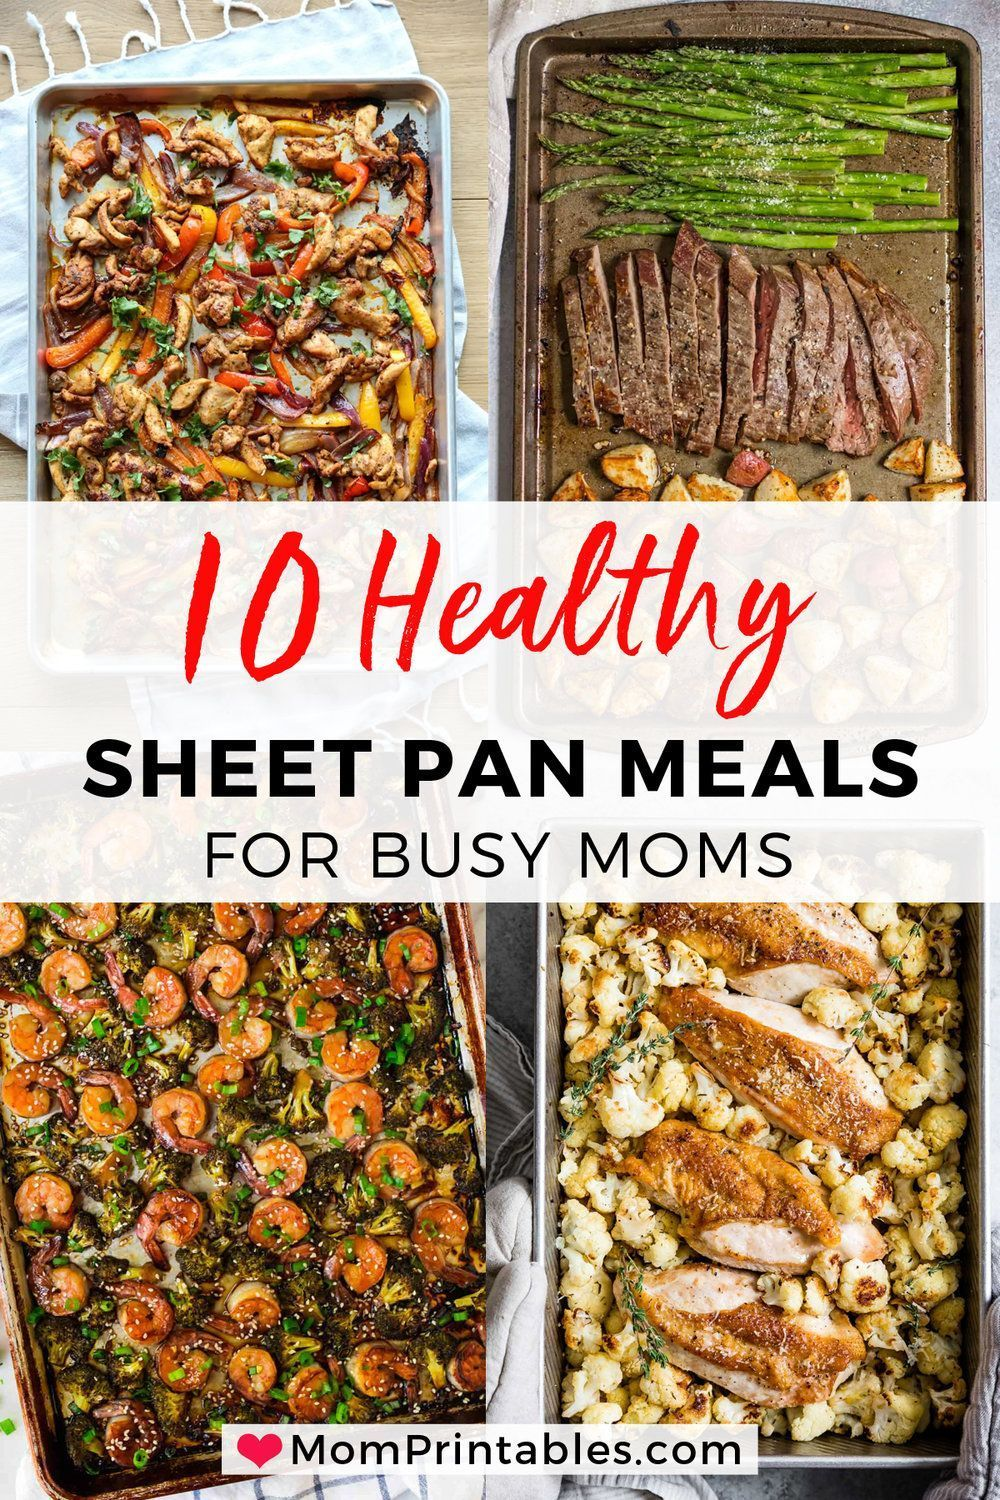 Healthy Sheet Pan Dinners To Try. I've compiled 11 healthy sheet pan dinners to ... -  Healthy Sheet Pan Dinners To Try. I've compiled 11 healthy sheet pan dinners to try that will mak - #budgetrecipesdinner #budgetrecipesfamilies #budgetrecipesforone #budgetrecipesfortwo #budgetrecipeshealthy #budgetrecipesvegetarian #compiled #dinners #healthy #Ive #pan #sheet